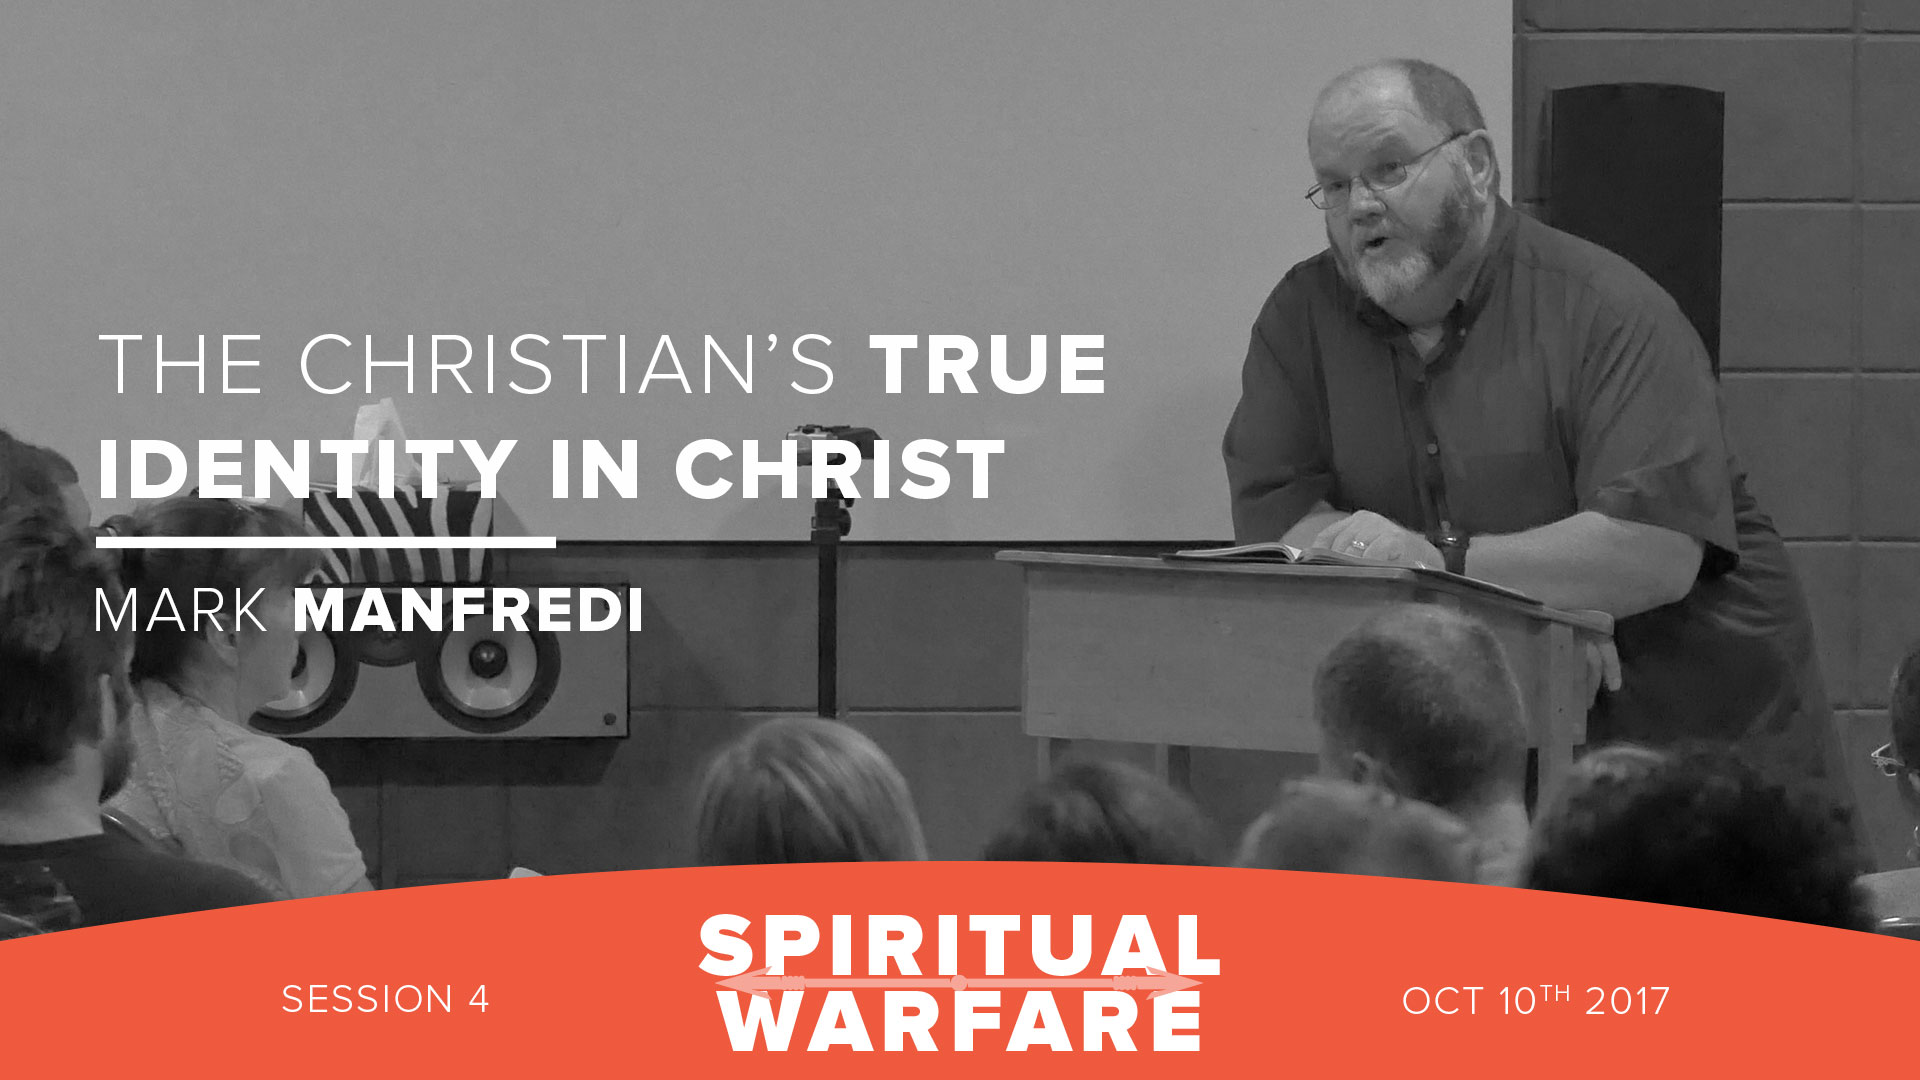 The Christian's true identity in Christ